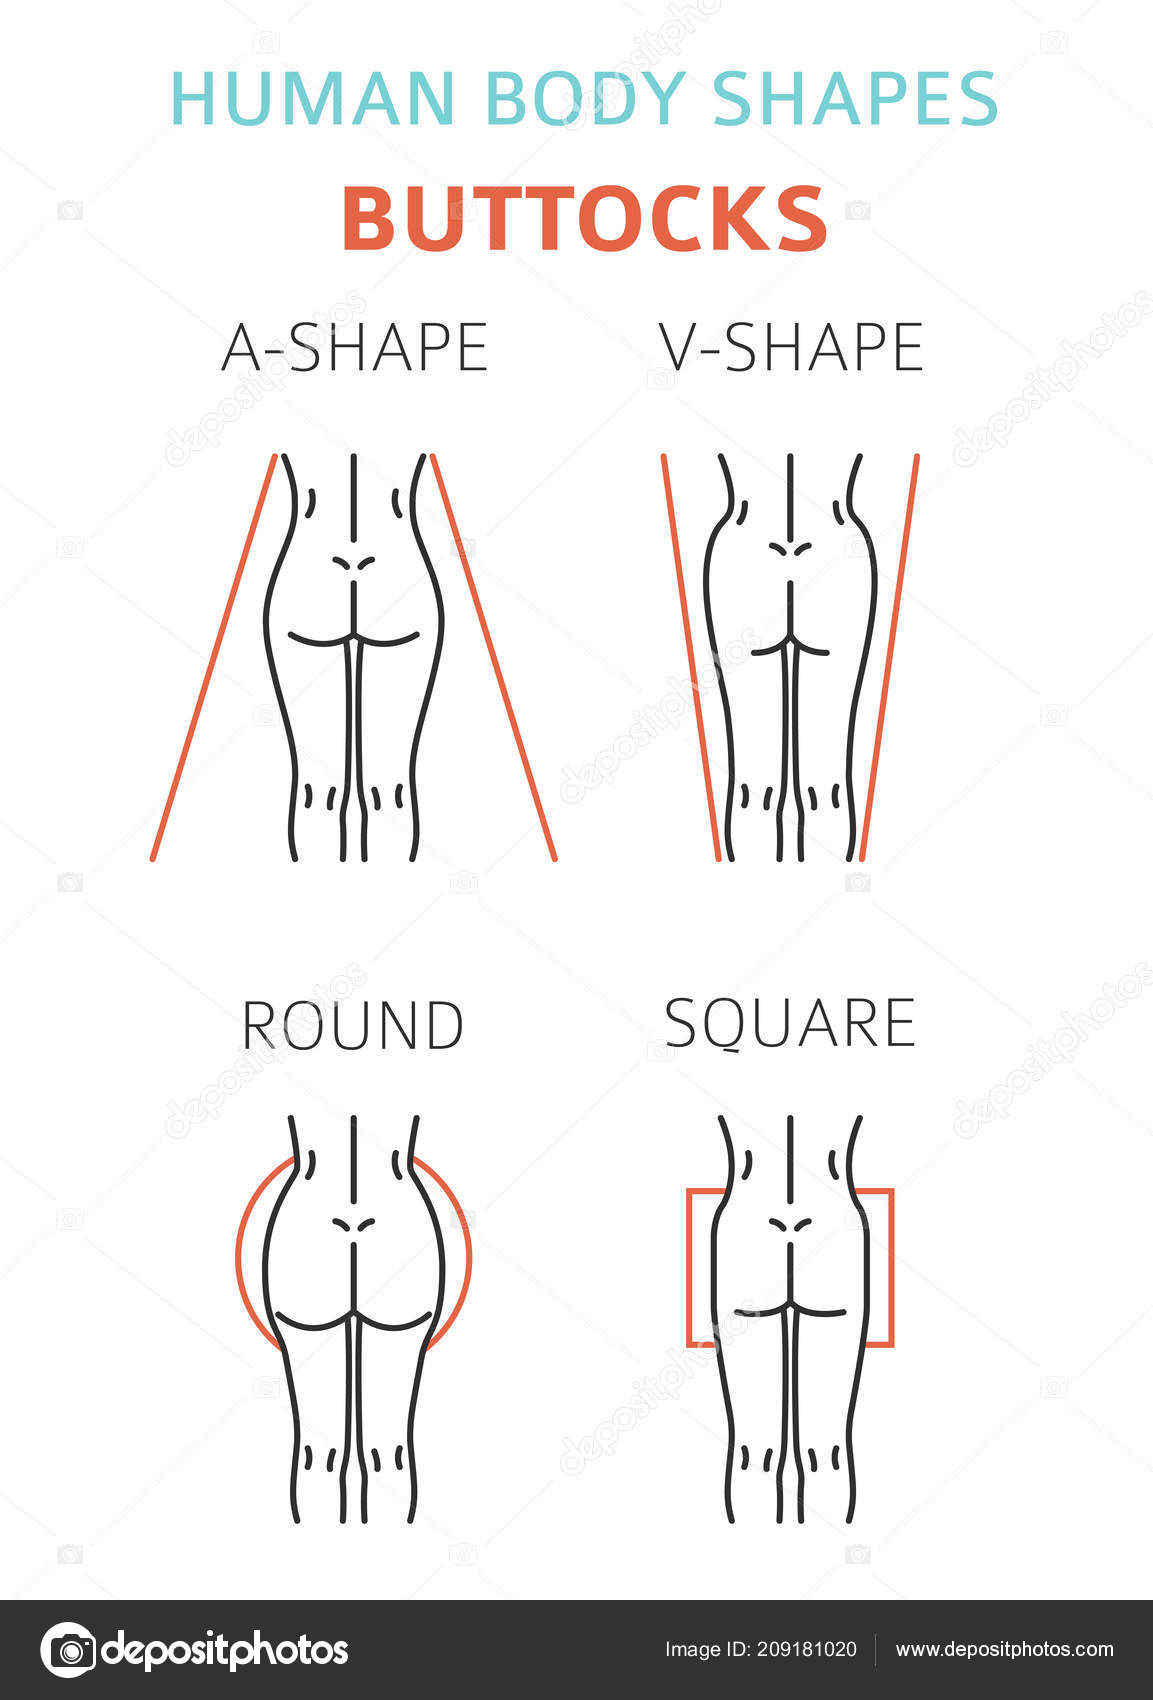 Human body shapes woman buttocks types set vector illustration human body shapes woman buttocks types set vector illustration vetores de stock ccuart Image collections